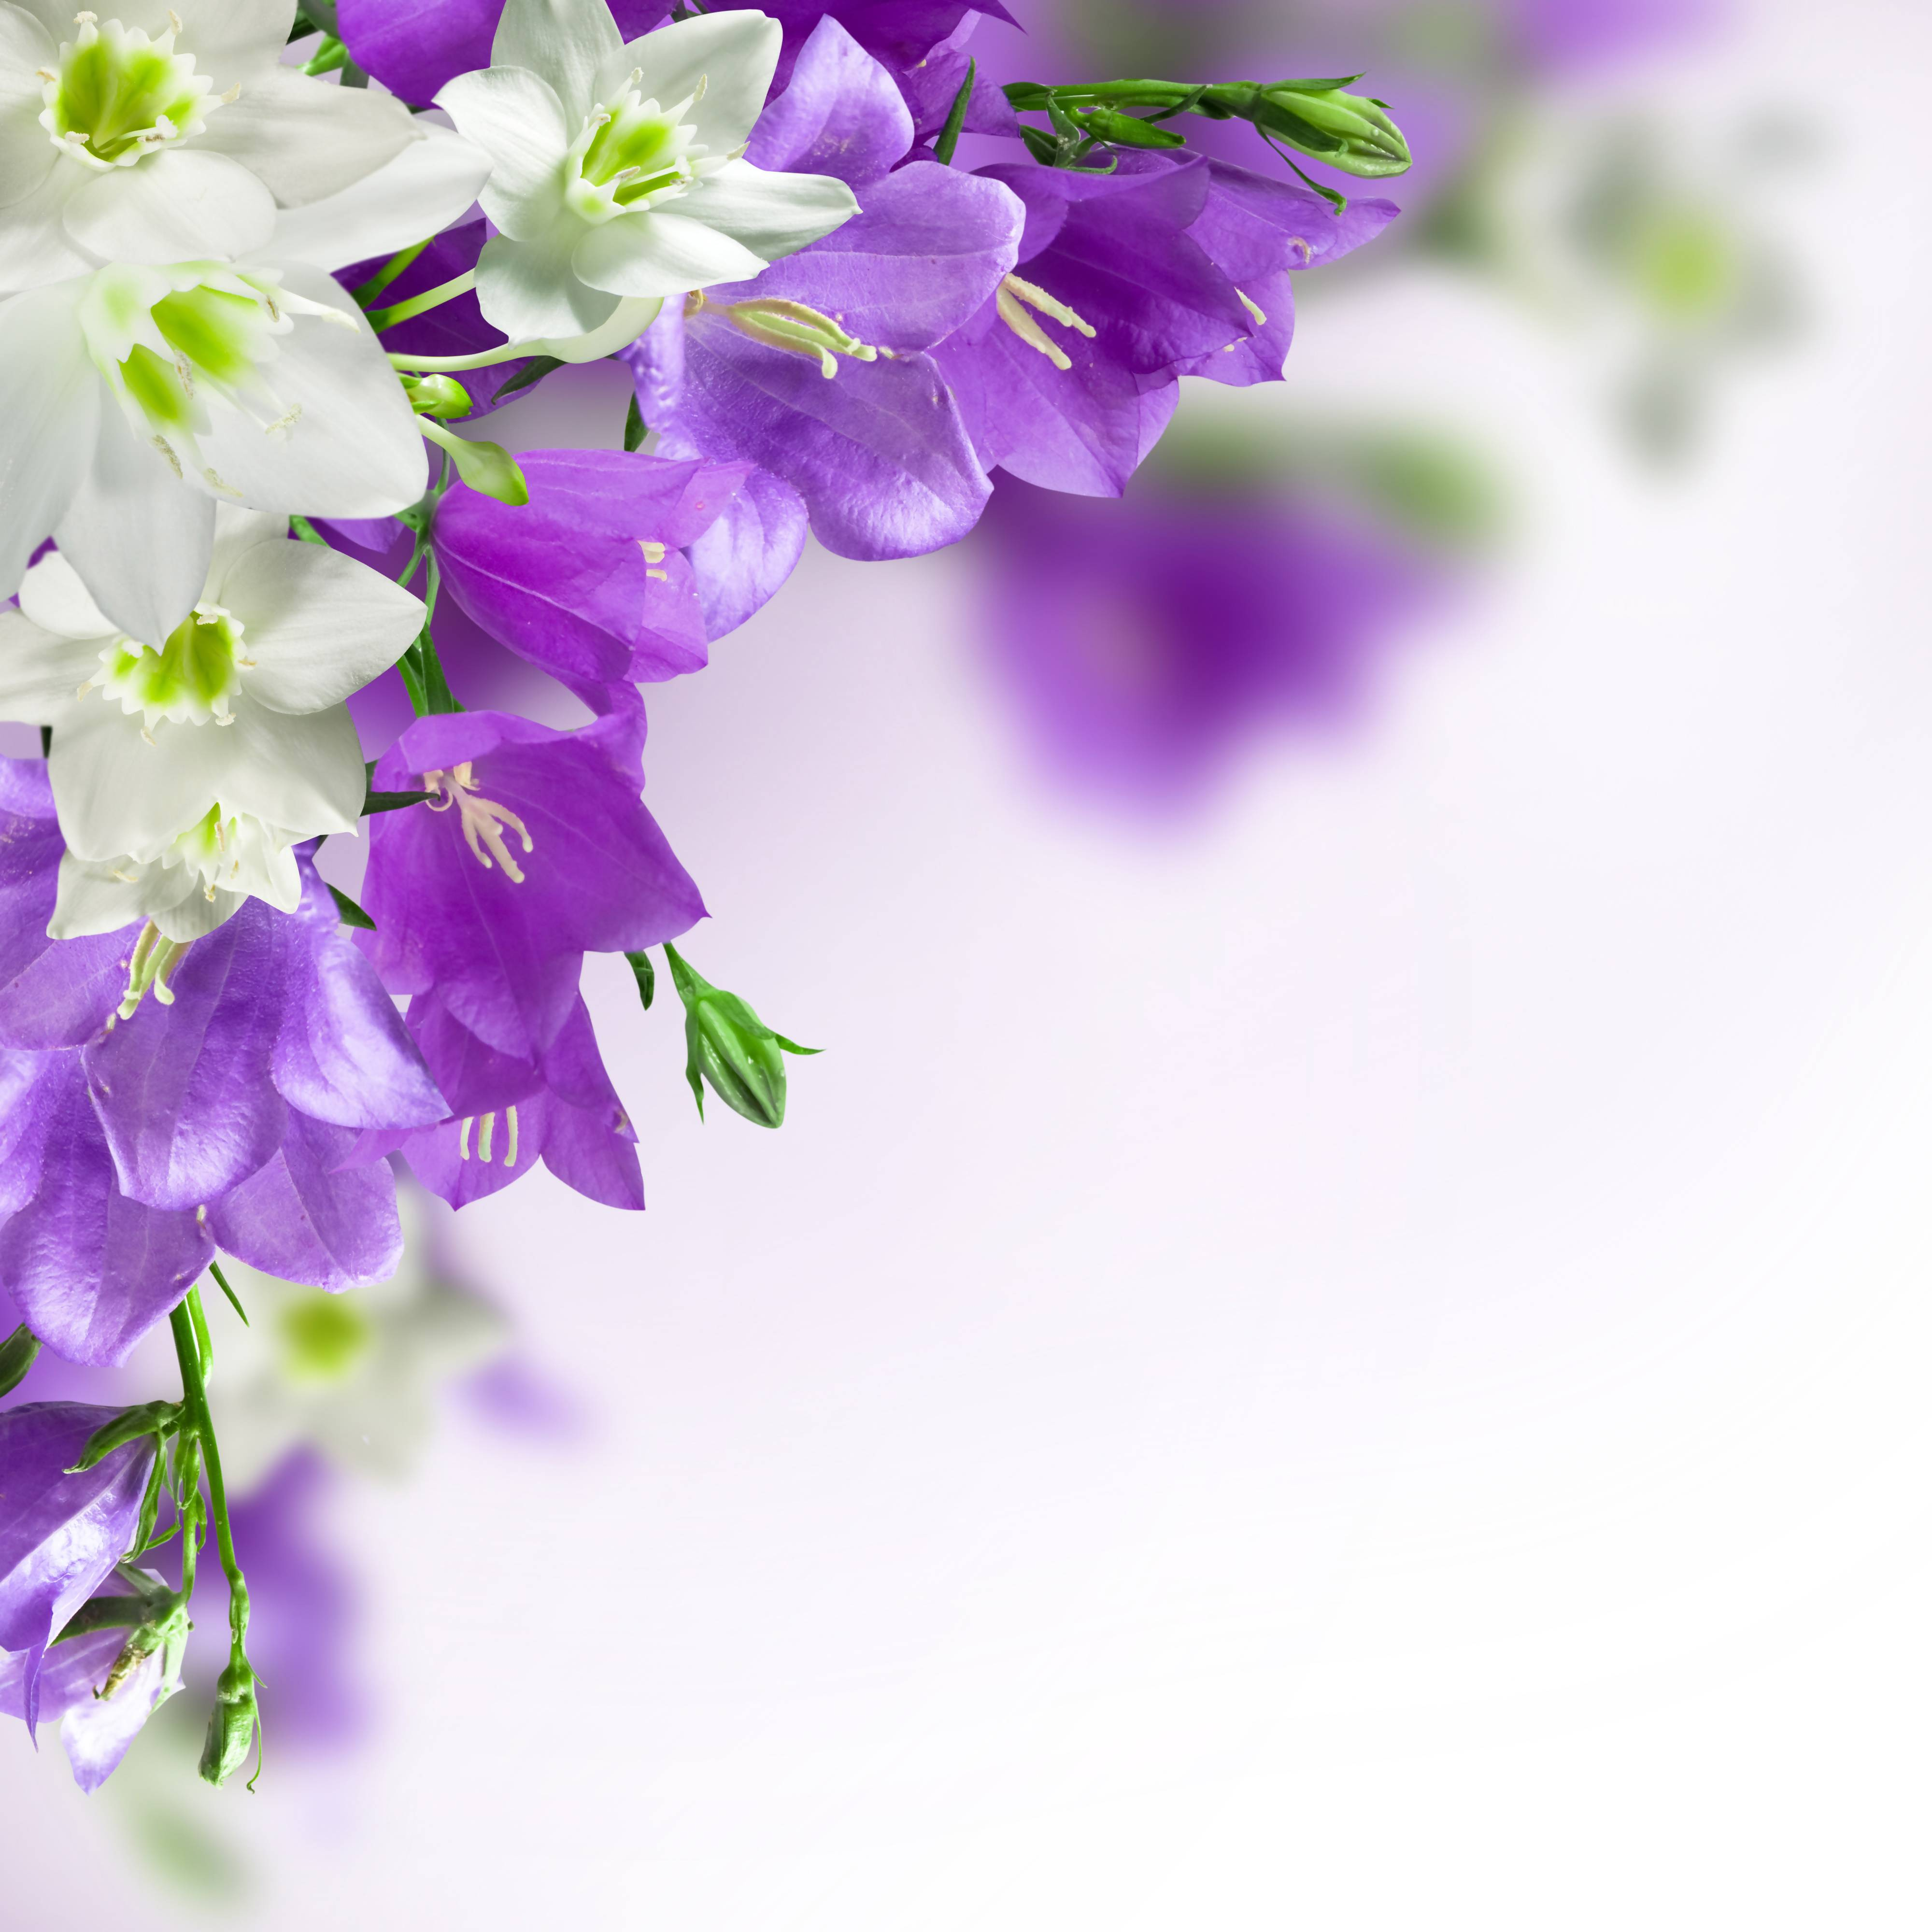 Wallpaper With Flowers Free Download